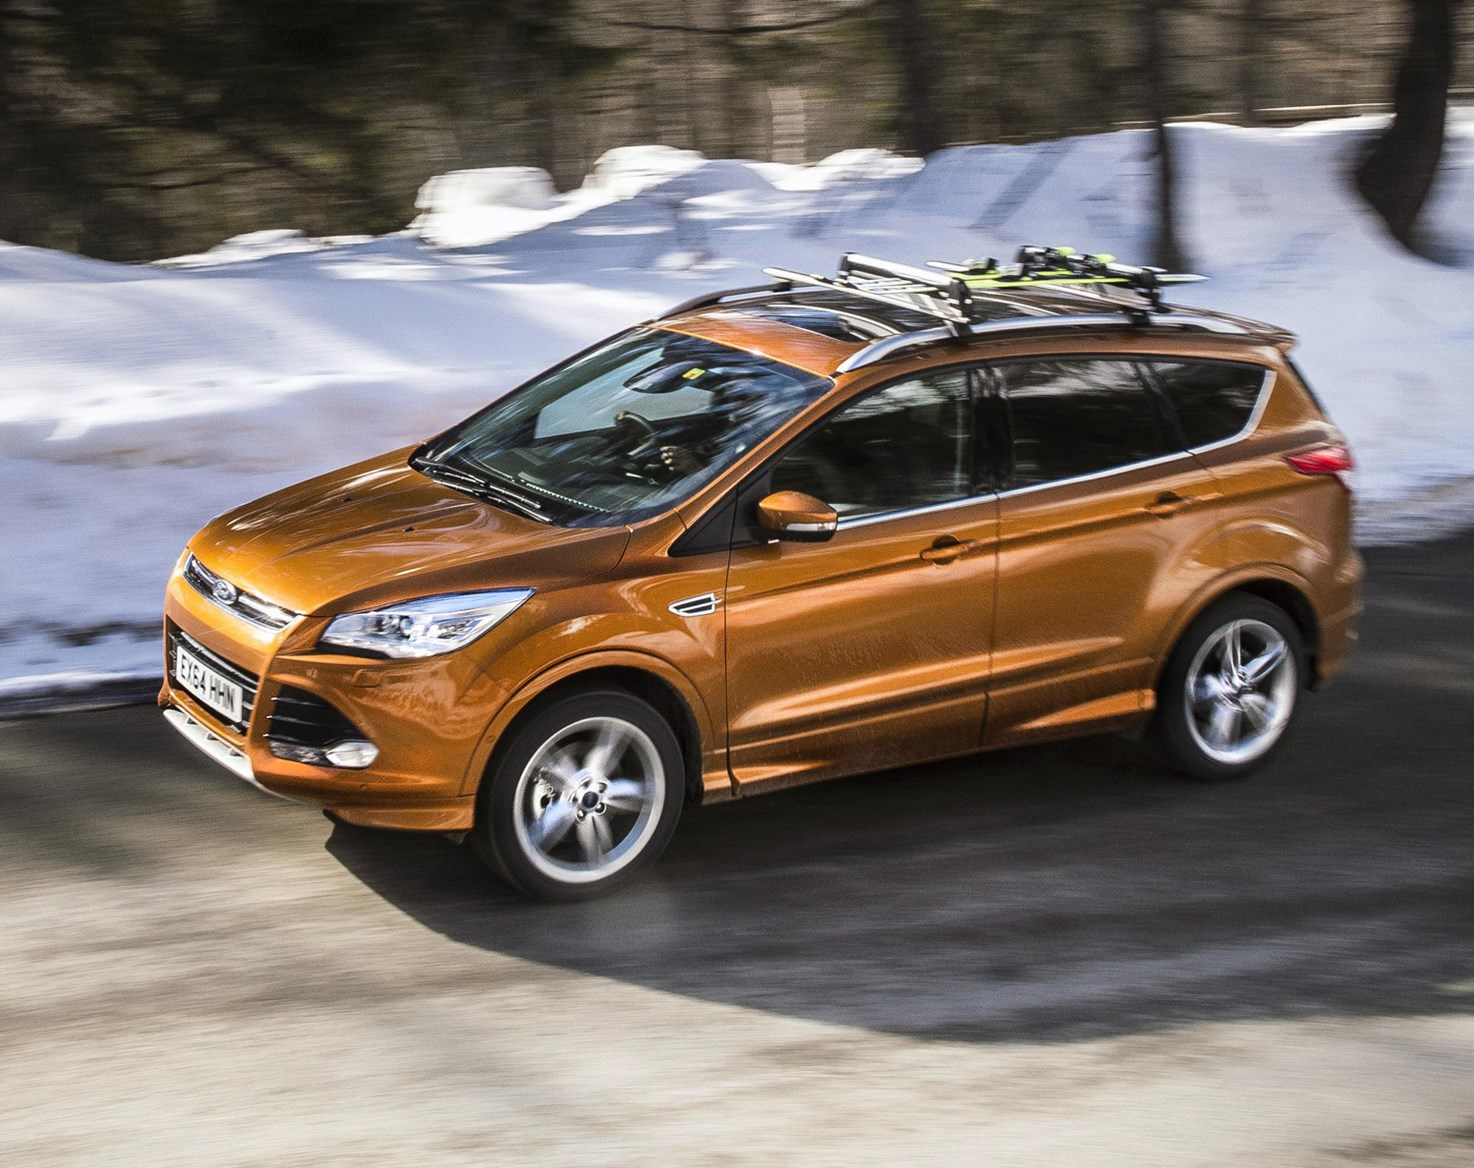 Ford Kuga Suv Review Parkers